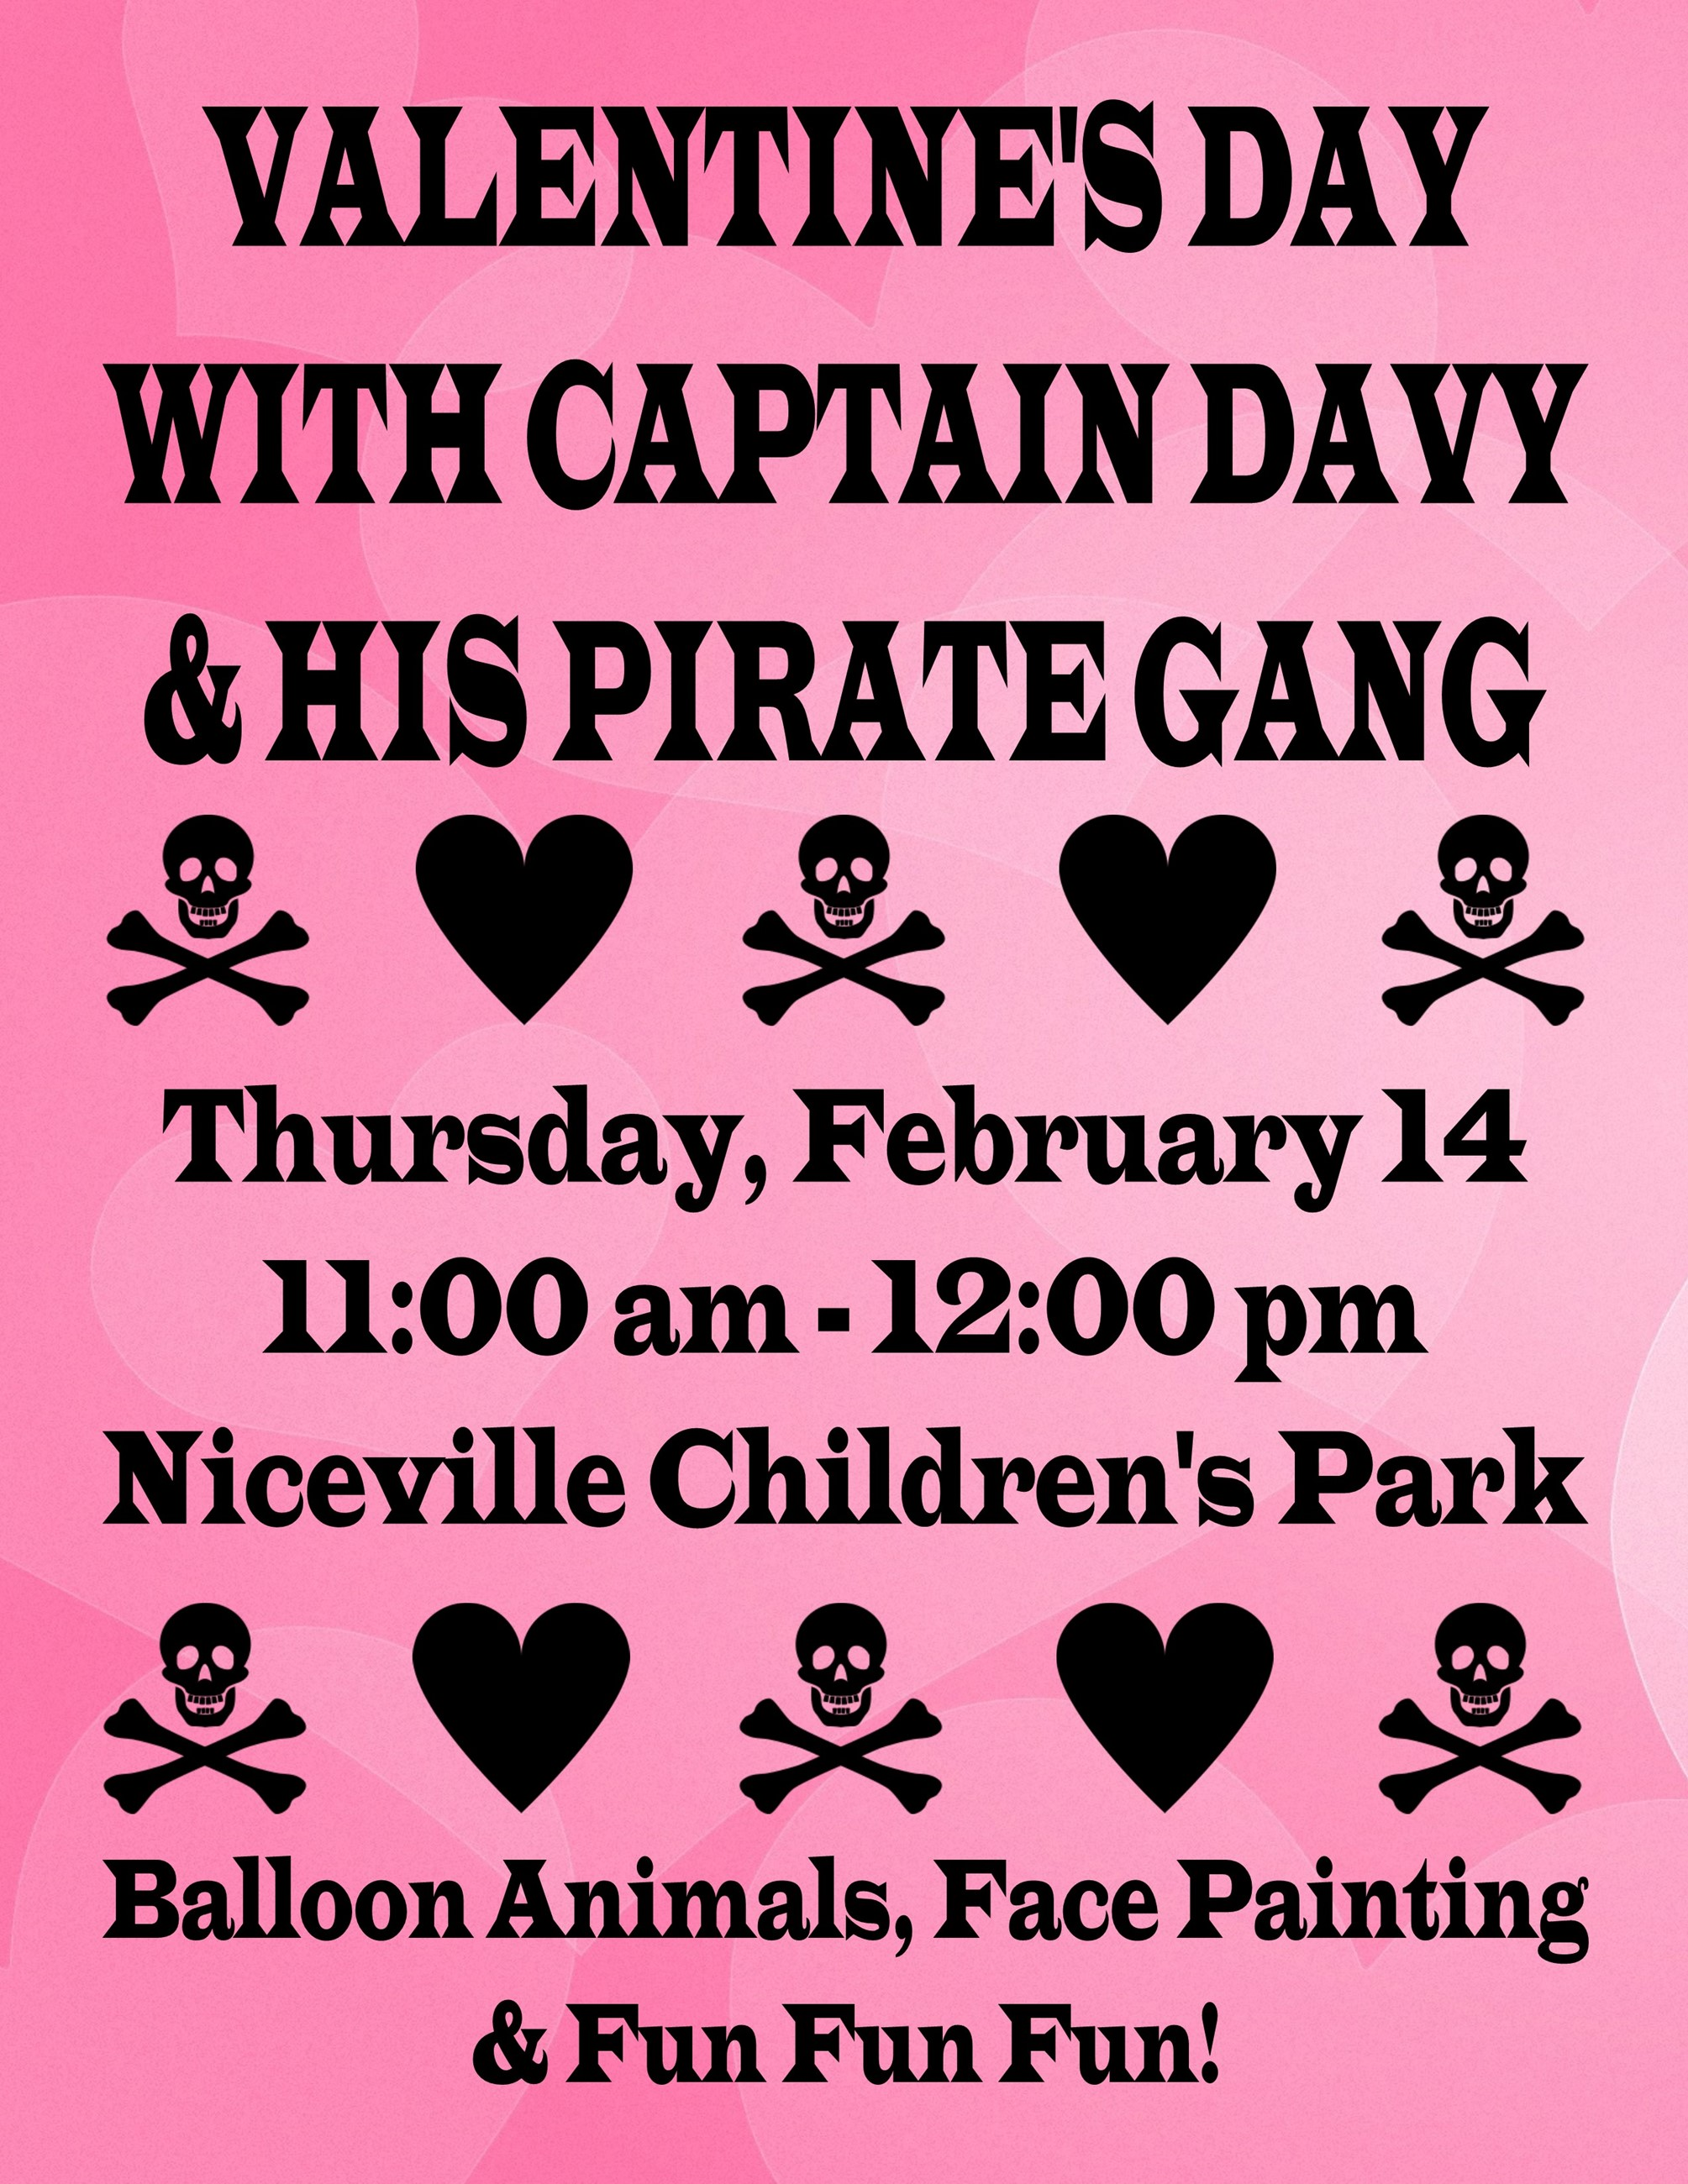 Flyer advertising Valentines Day with Captain Davy at the Niceville Children's Park